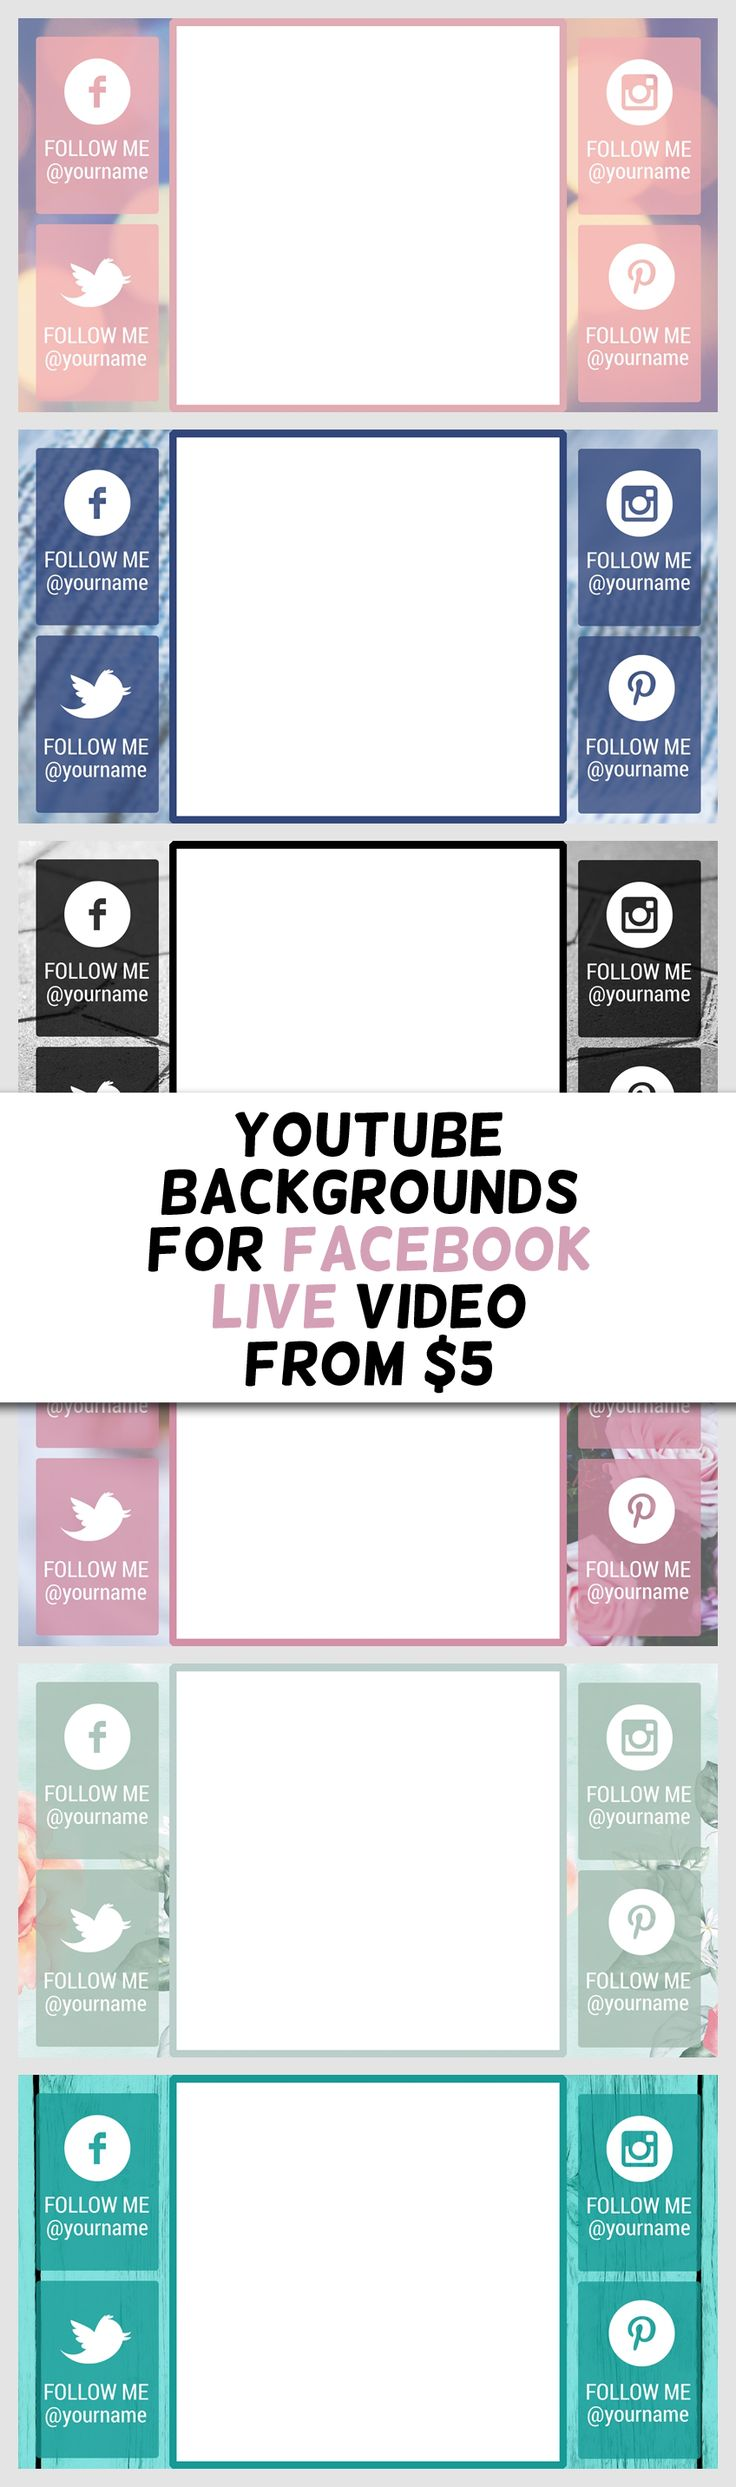 Youtube Backgrounds for Facebook Live video from $5 on Fiverr by Katie Paul